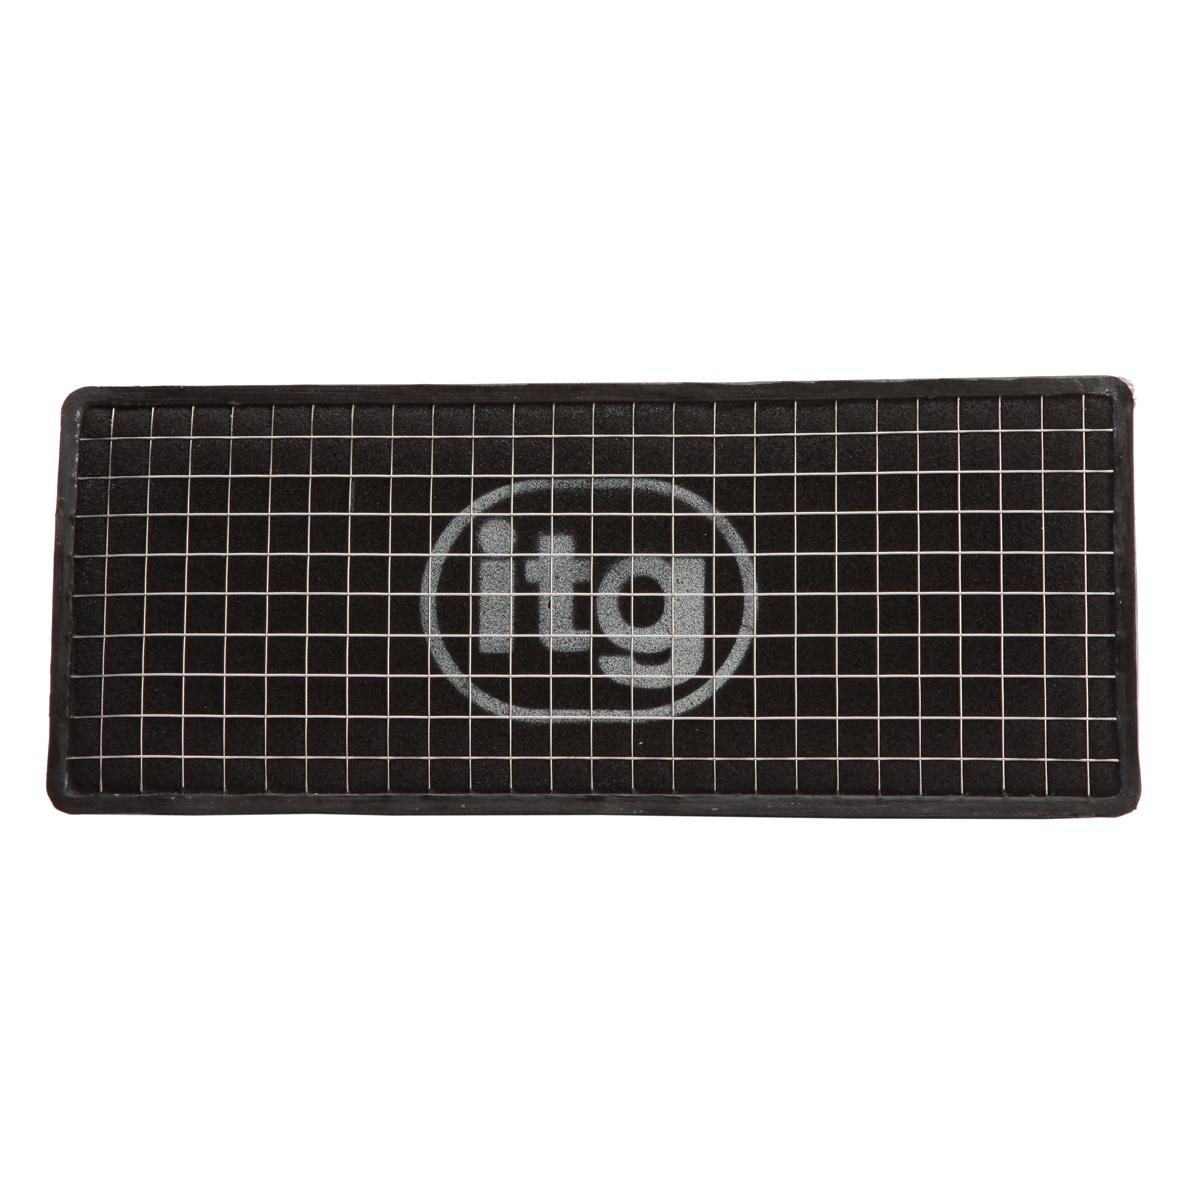 ITG Air Filter For Peugeot 207 1.6 Turbo (09/06>), Turbo Rc (02/07>)